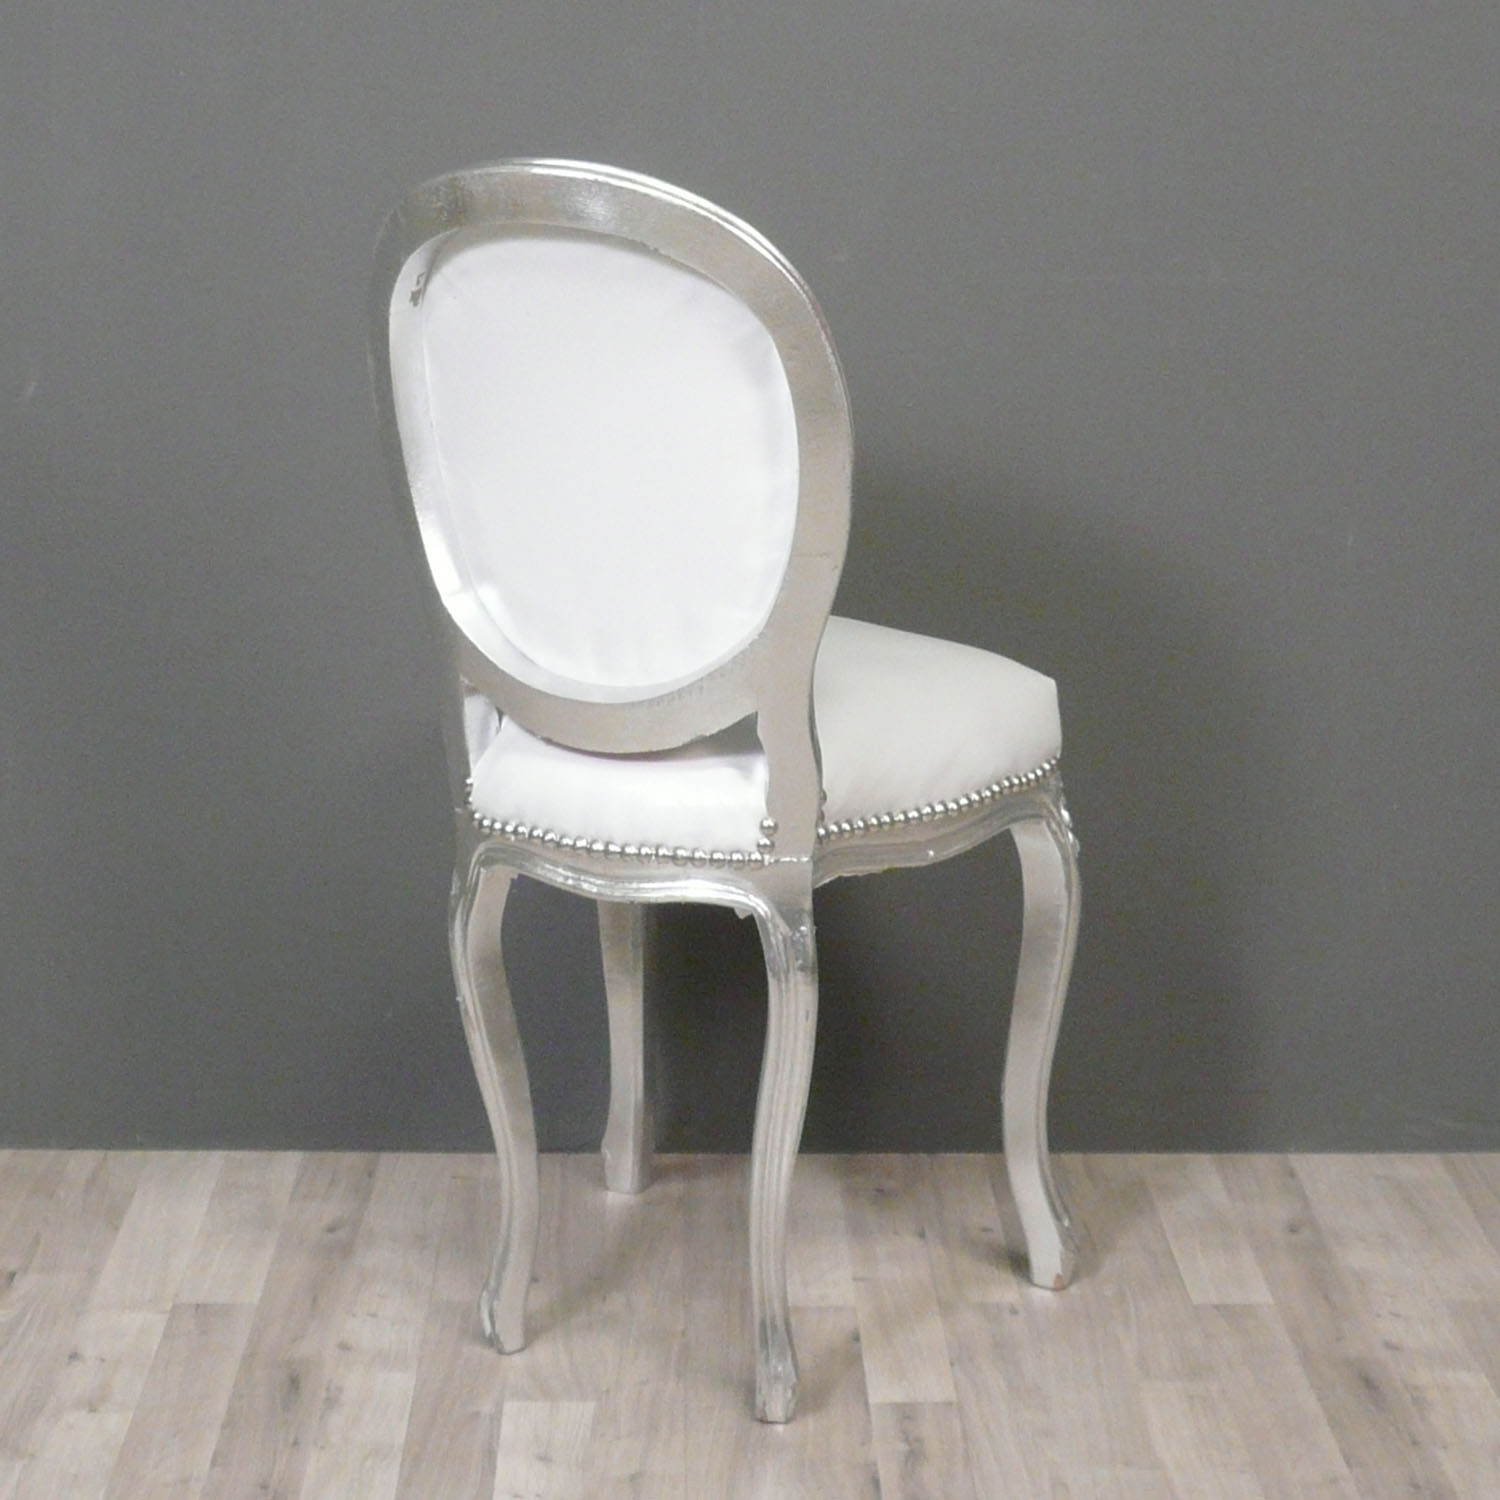 Petite chaise baroque style louis xv chaises baroques - Chaise baroque blanche ...